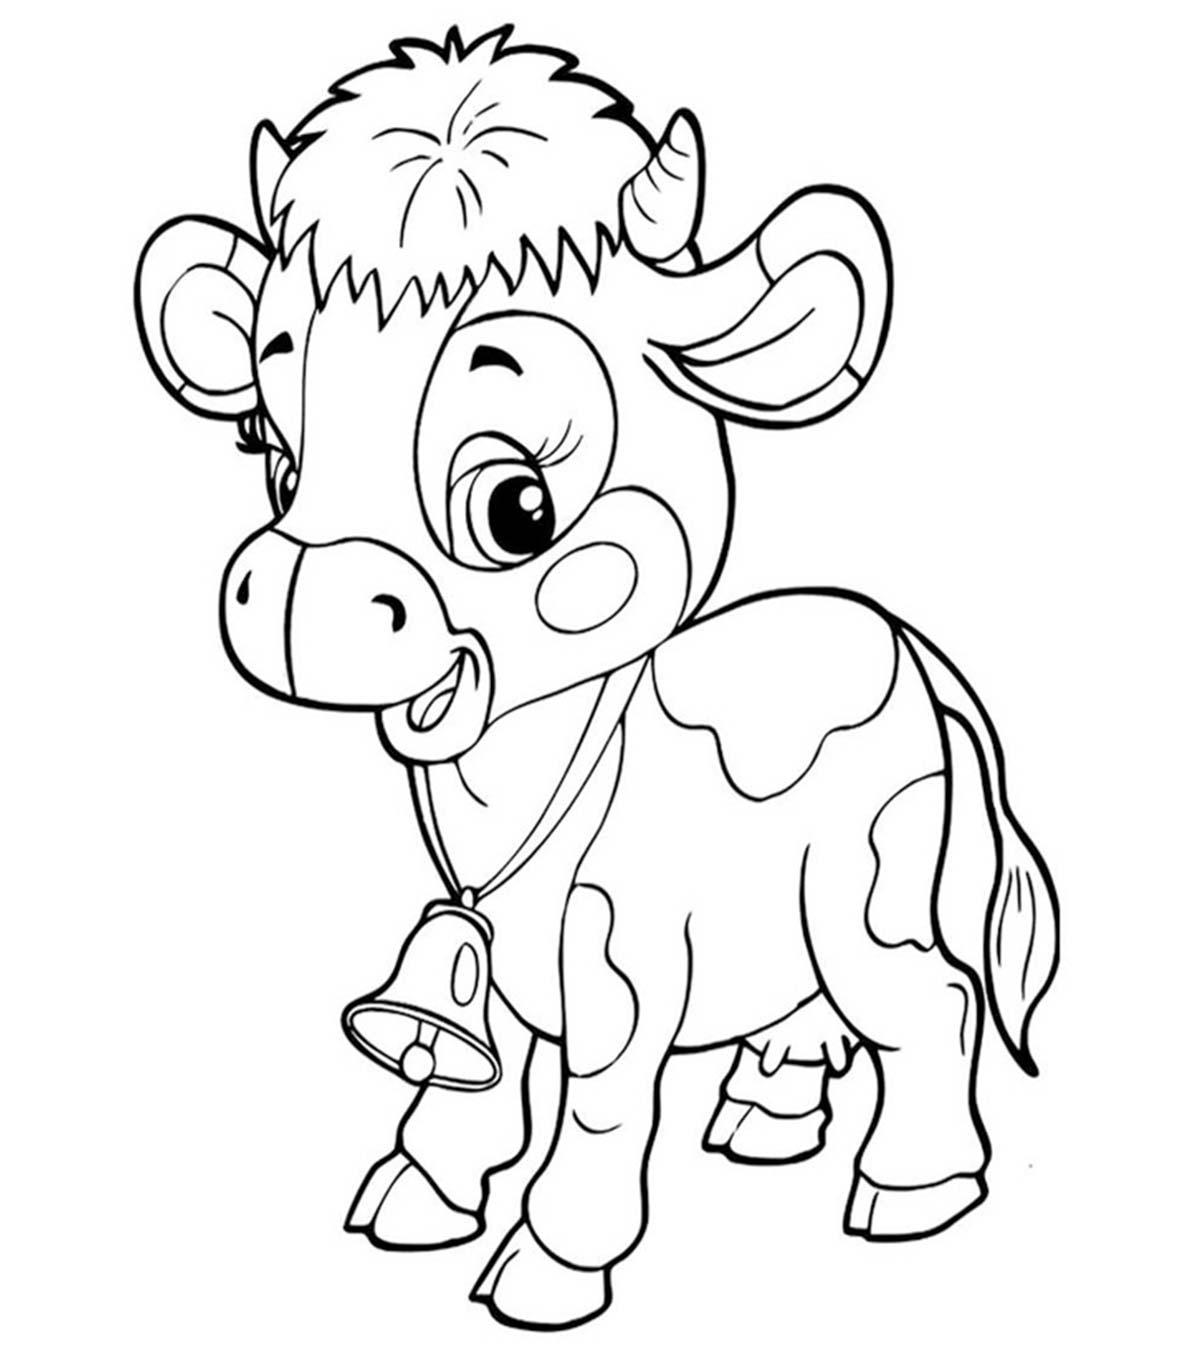 Free Printable Cow Coloring Pages For Toddlers – Pusat Hobi